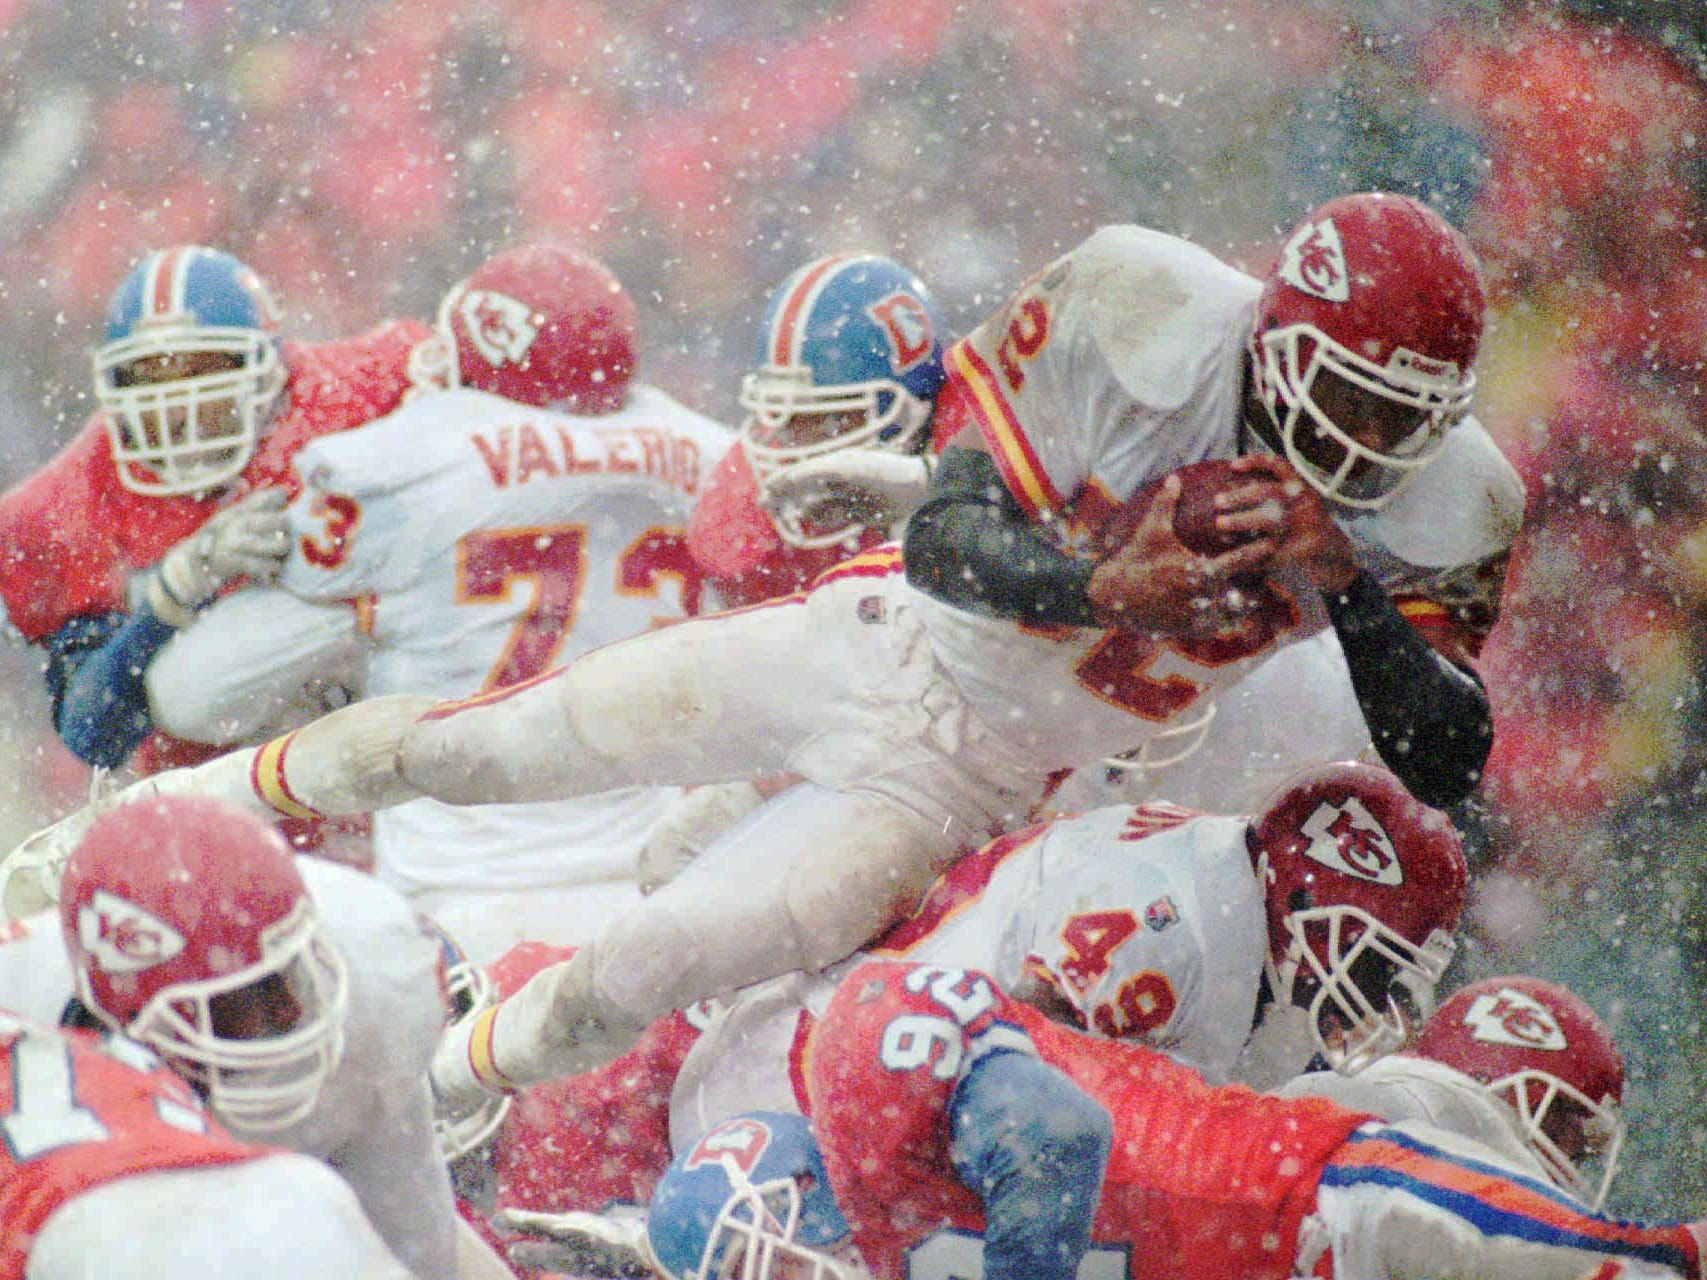 Oct. 22, 1995: Kansas City Chiefs running back Marcus Allen dives for a 1-yard touchdown against the Denver Broncos at Mile High Stadium. It was the 100th career NFL touchdown for Allen. The Chiefs won the game, 21-7 in a driving snow storm.